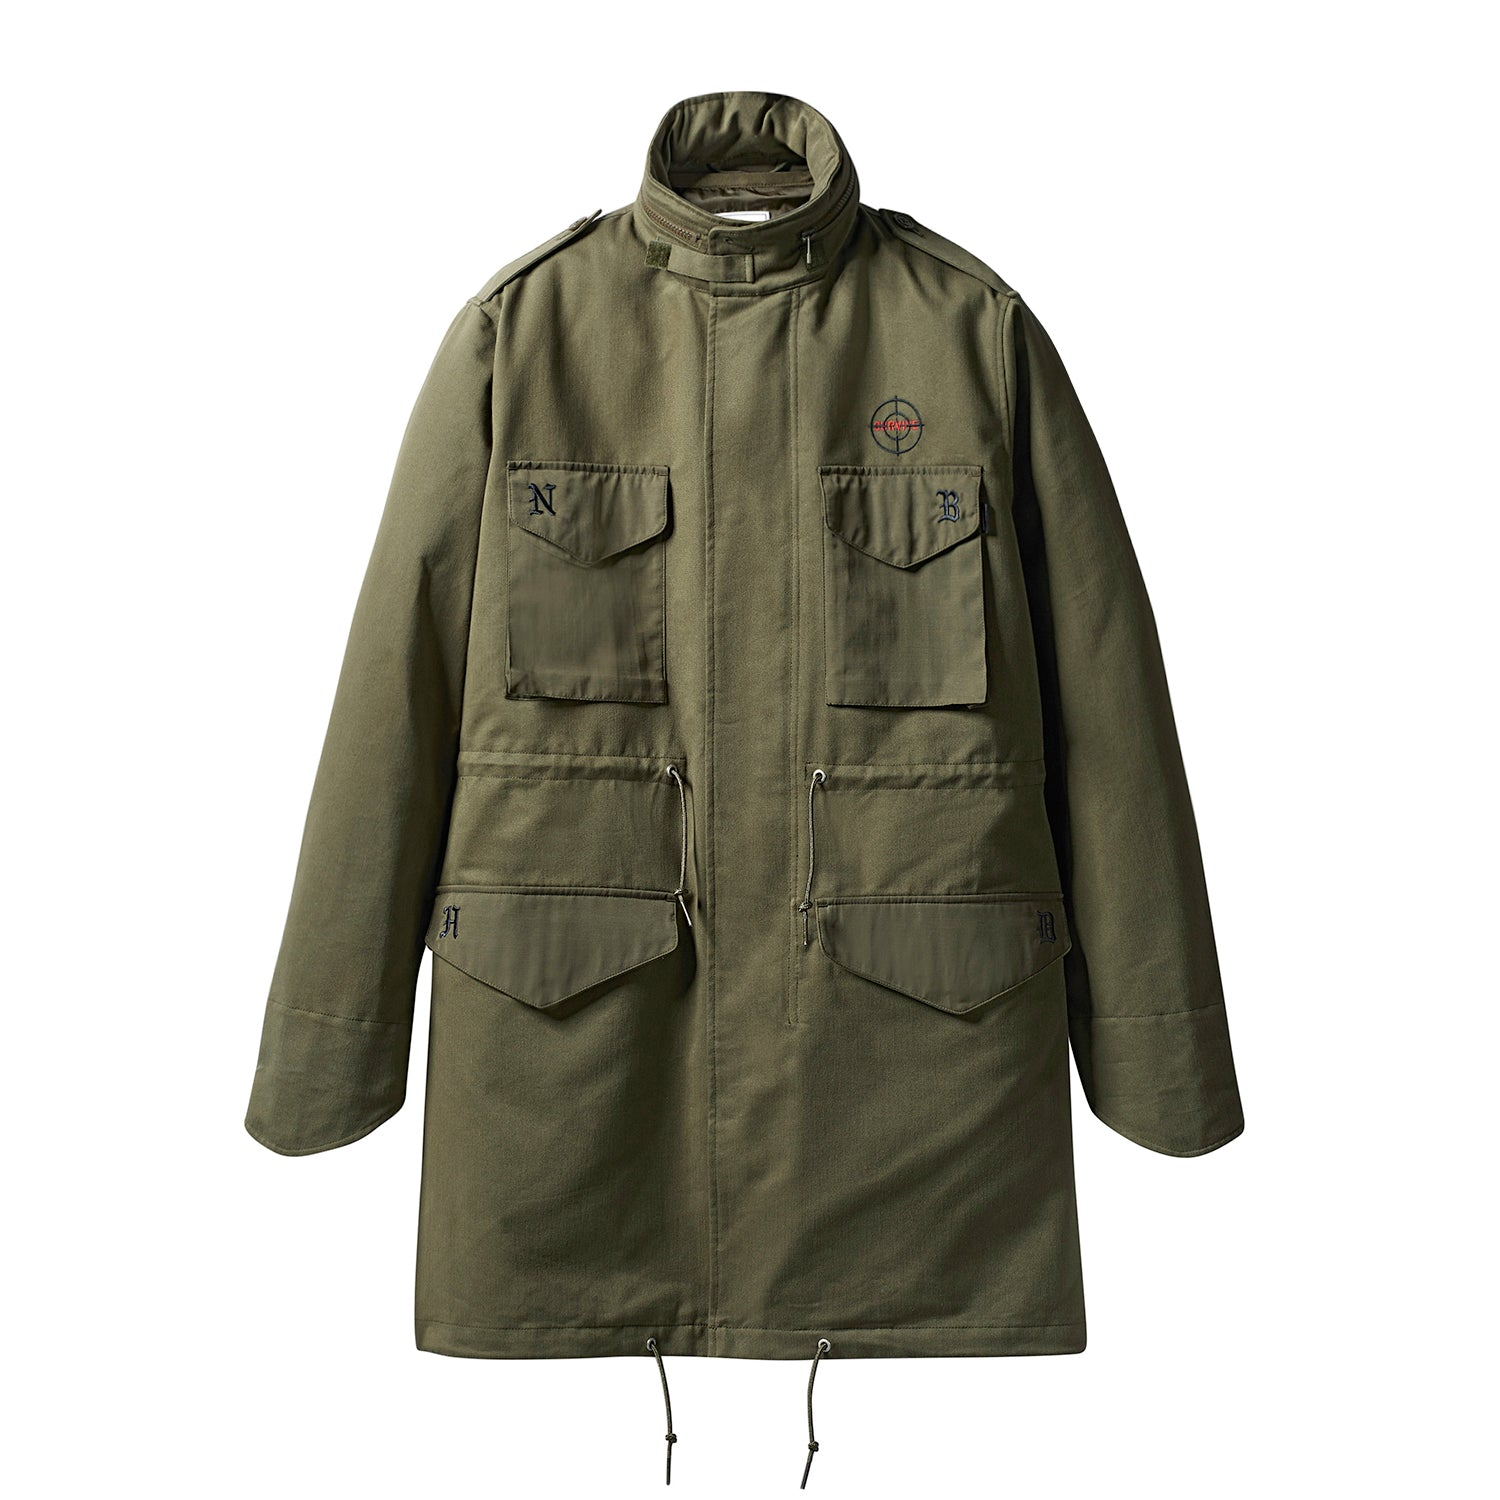 a8a174a4 adidas Originals x NEIGHBORHOOD M-65 Jacket Trace Olive. Touch to zoom